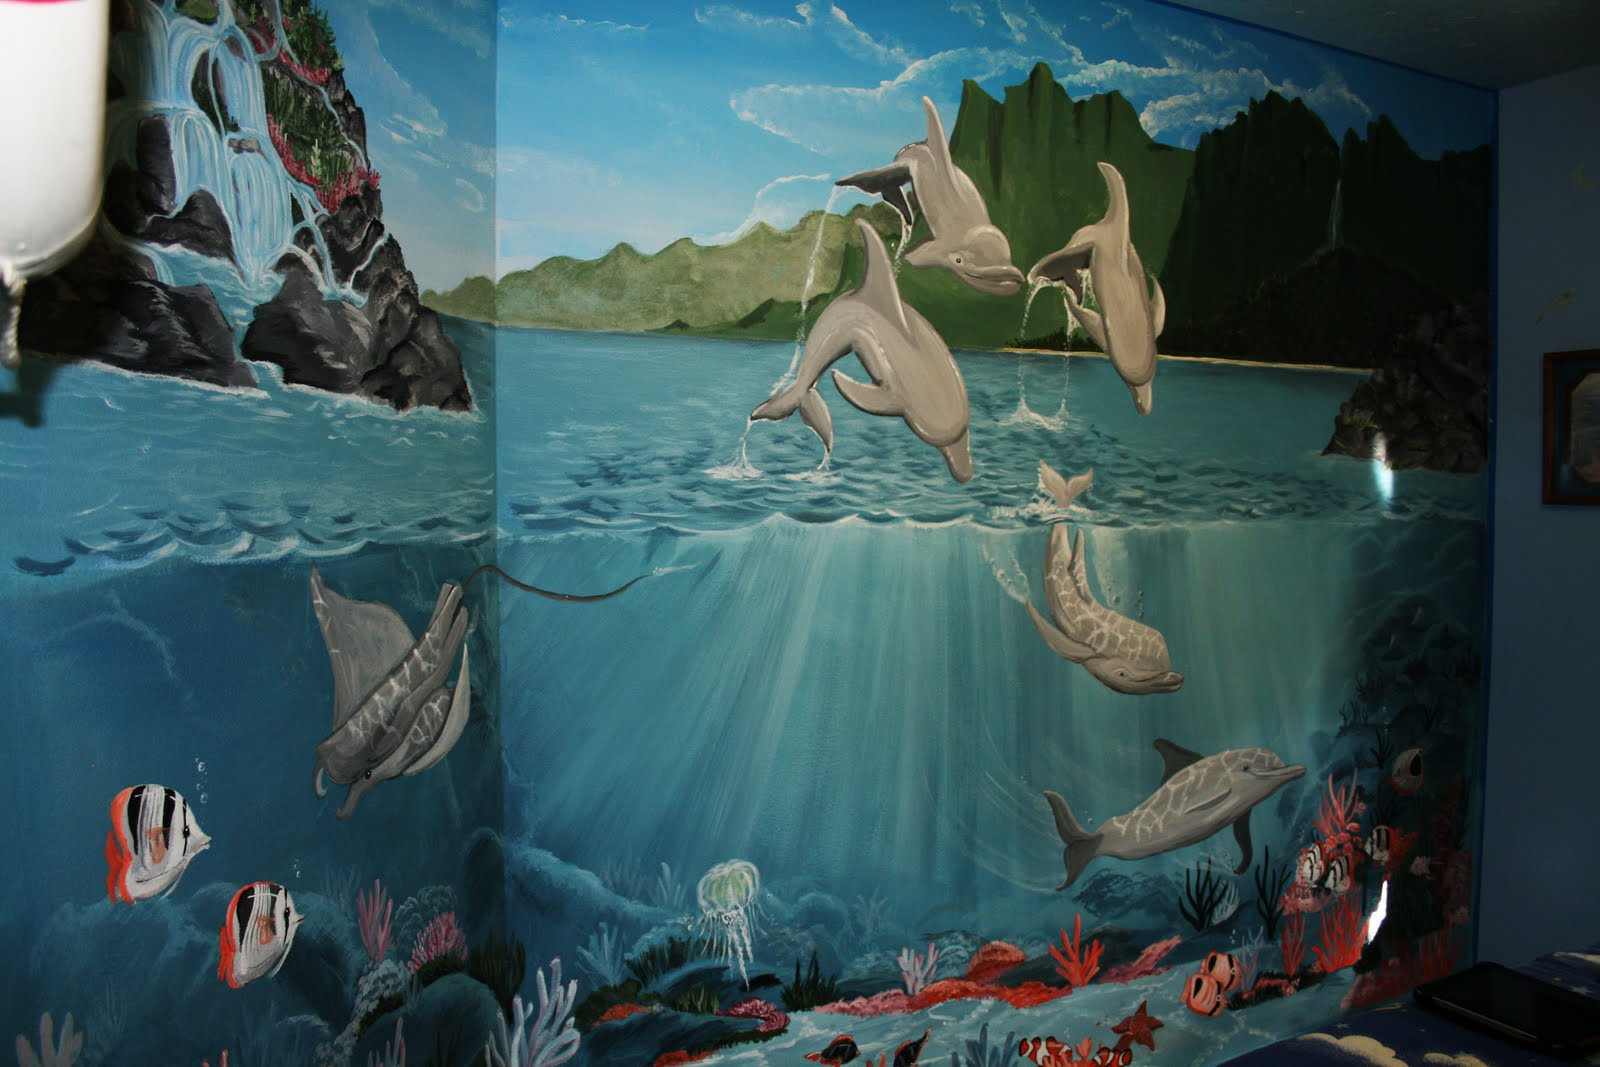 artistic murals under the sea mural still pics under the sea mural still pics